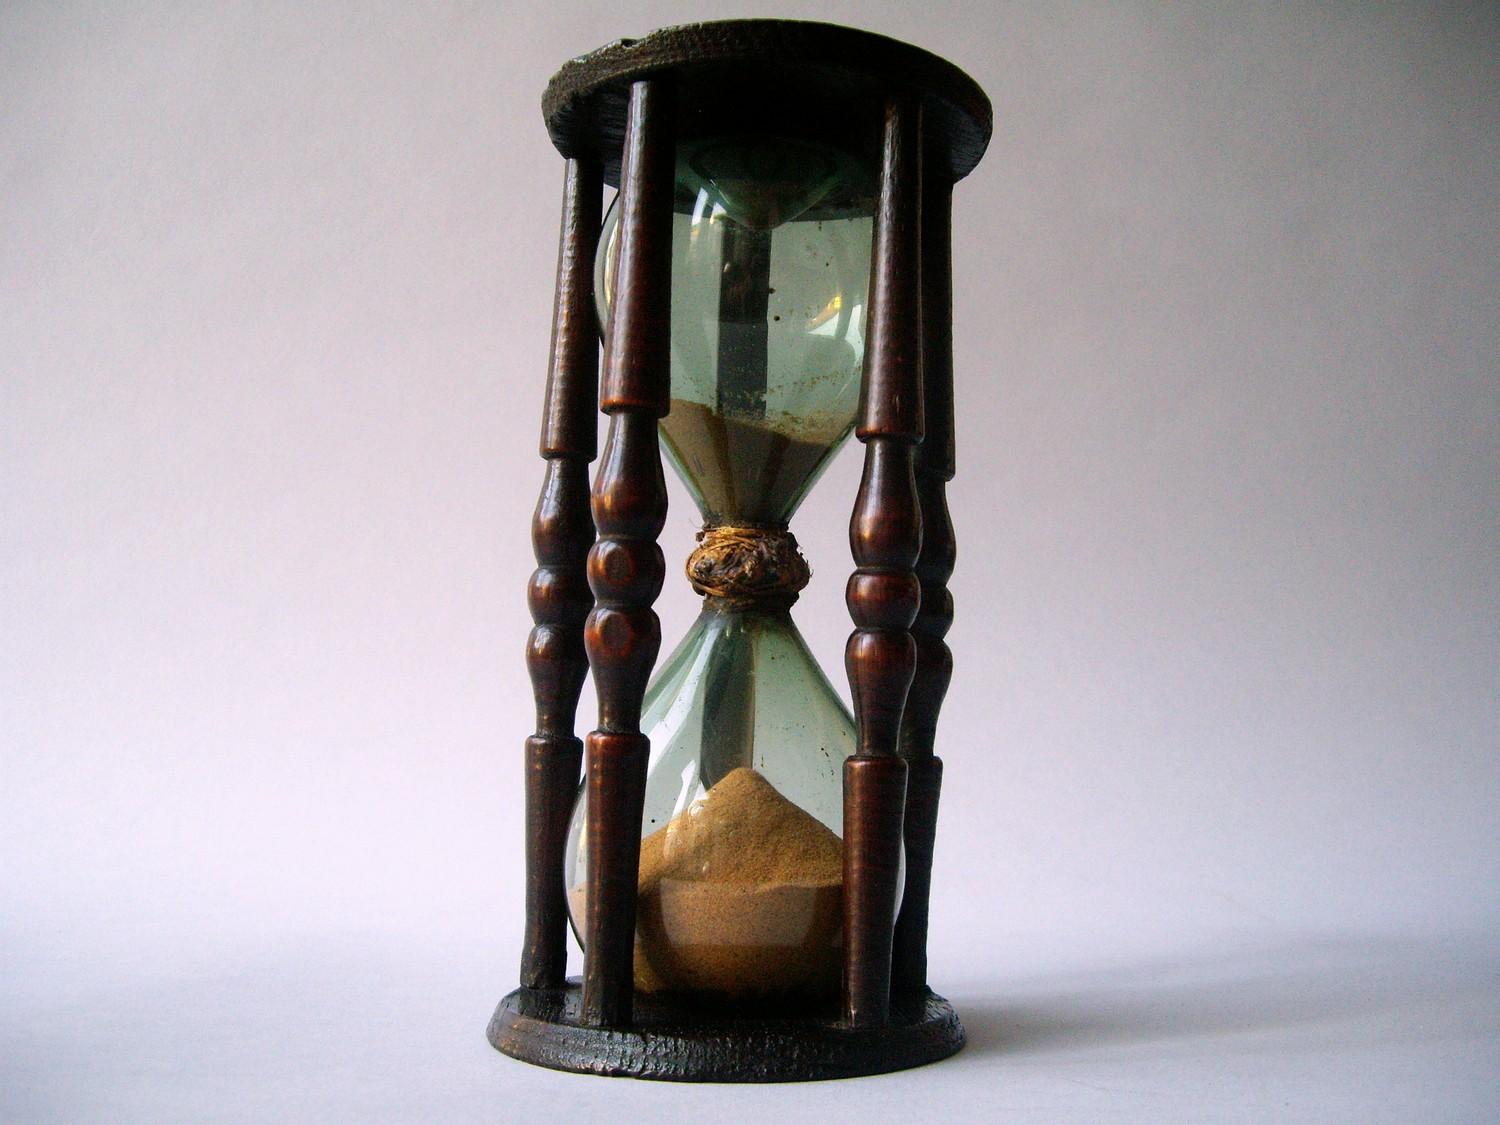 17TH CENTURY HOURGLASS IN OAK WOOD SETTING